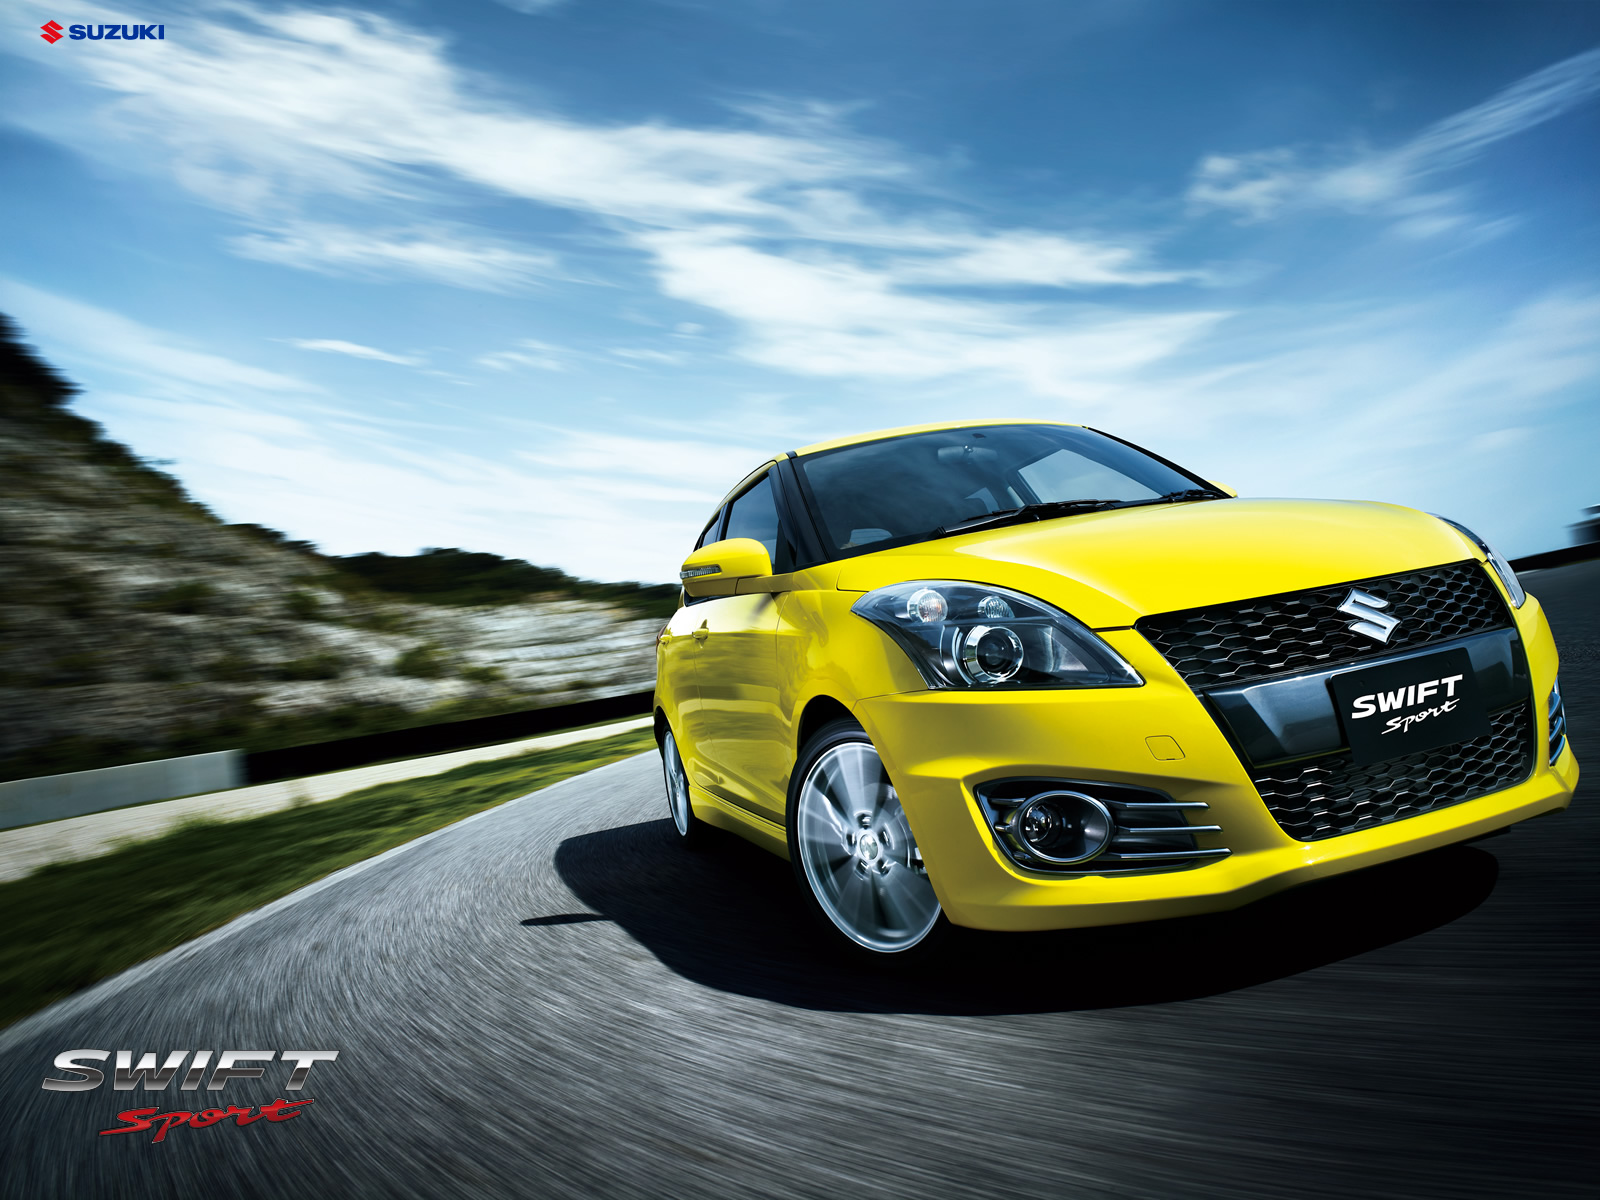 Suzuki Swift Wallpapers OMBF97Q 43552 Kb WallpapersExpertcom 1600x1200